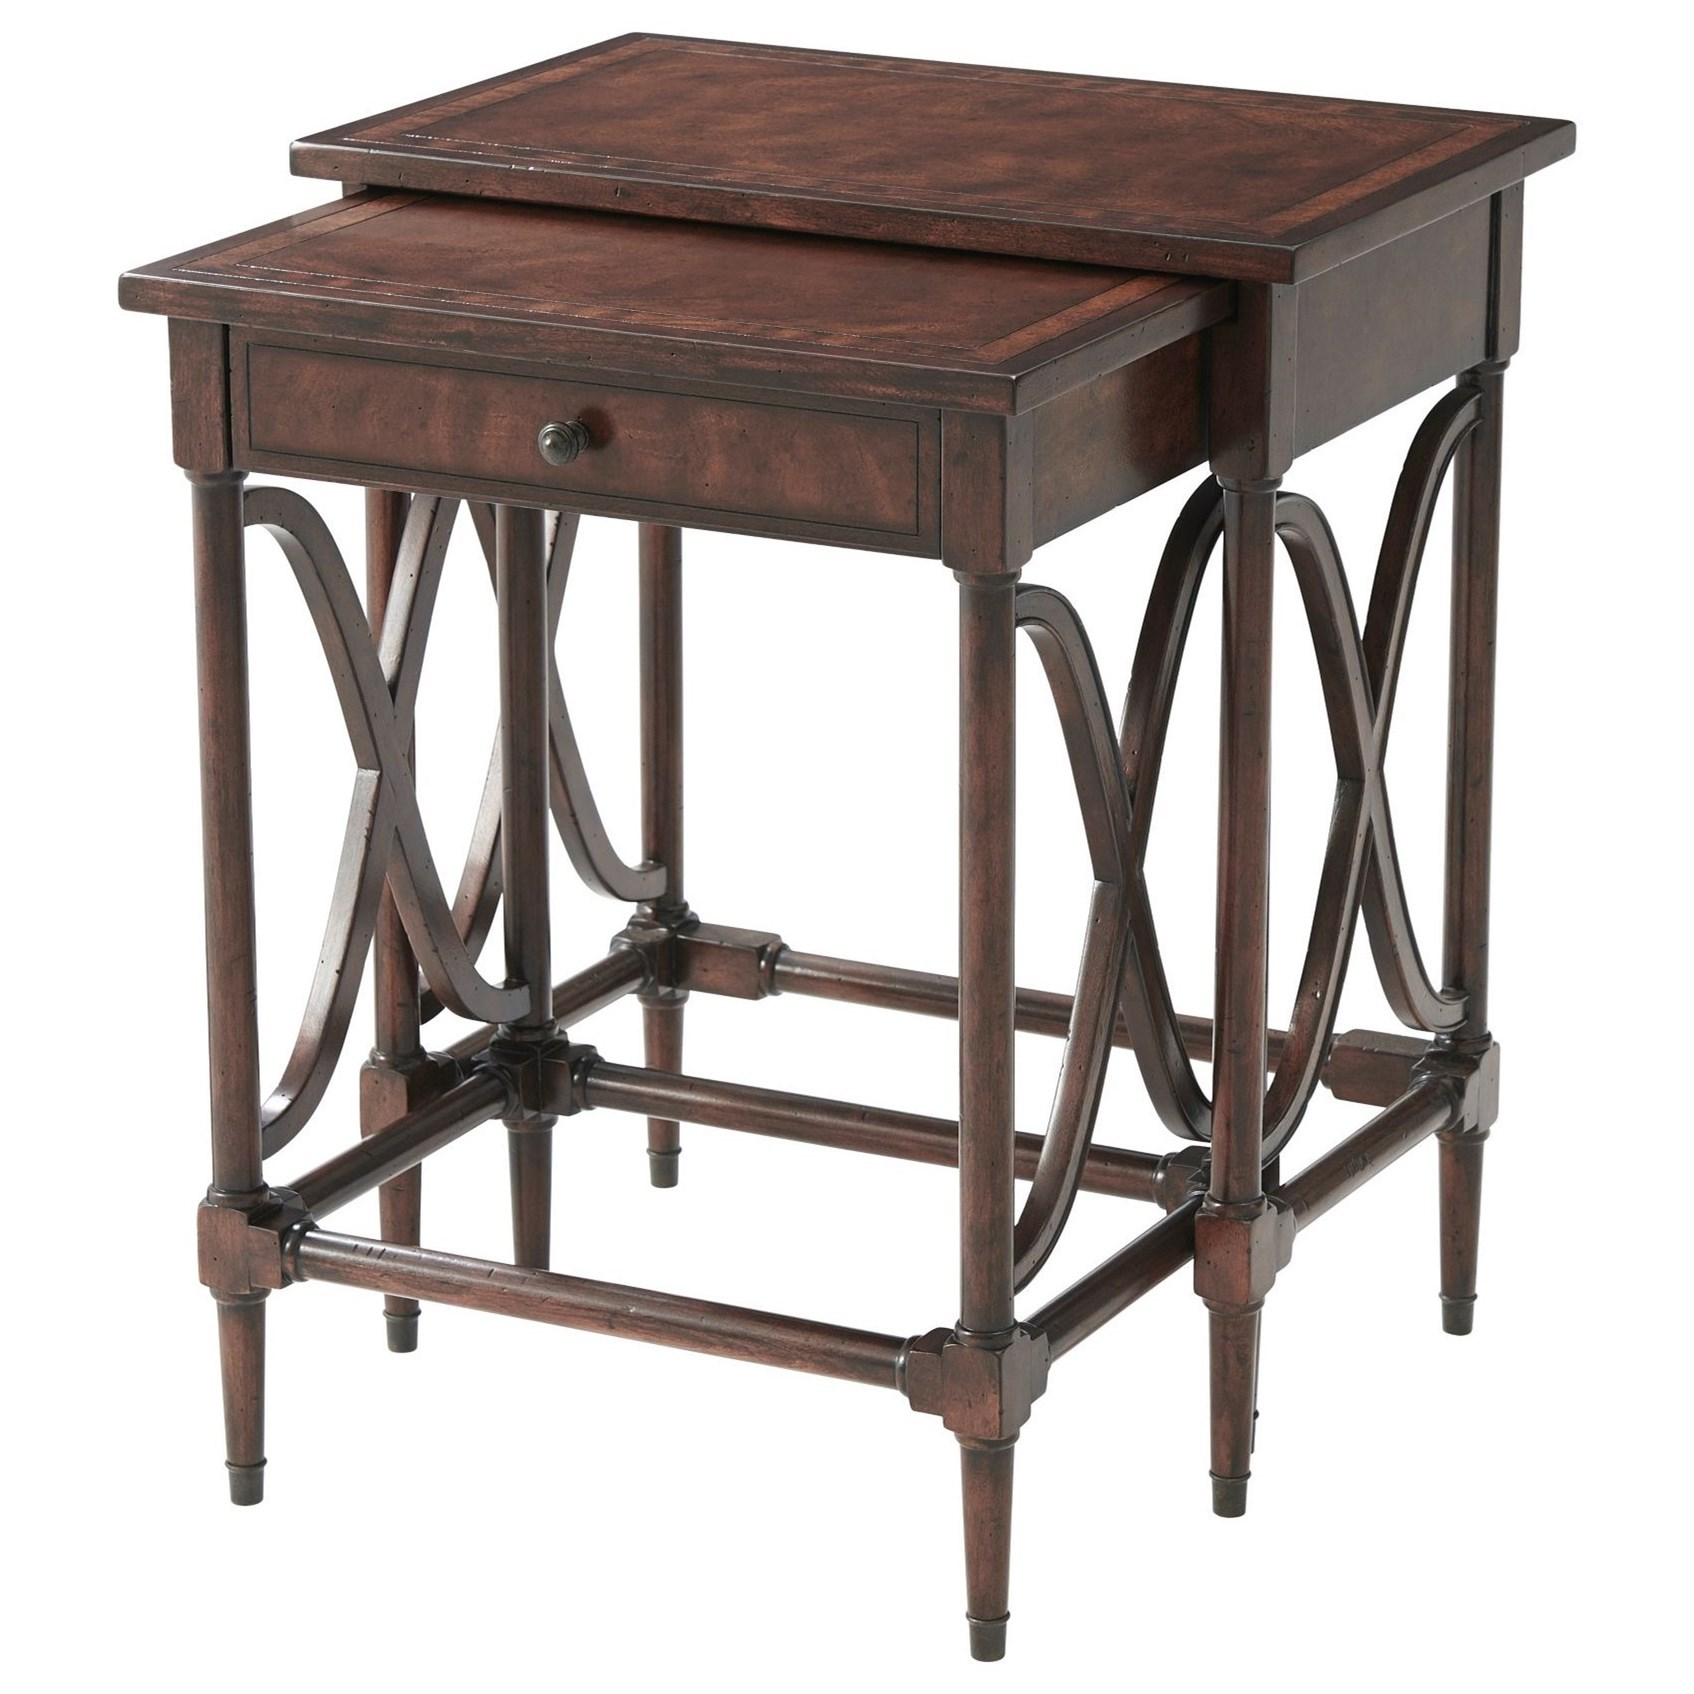 Theodore Alexander Brooksby Waves of Approval Nest of Tables - Item Number: 5005-812